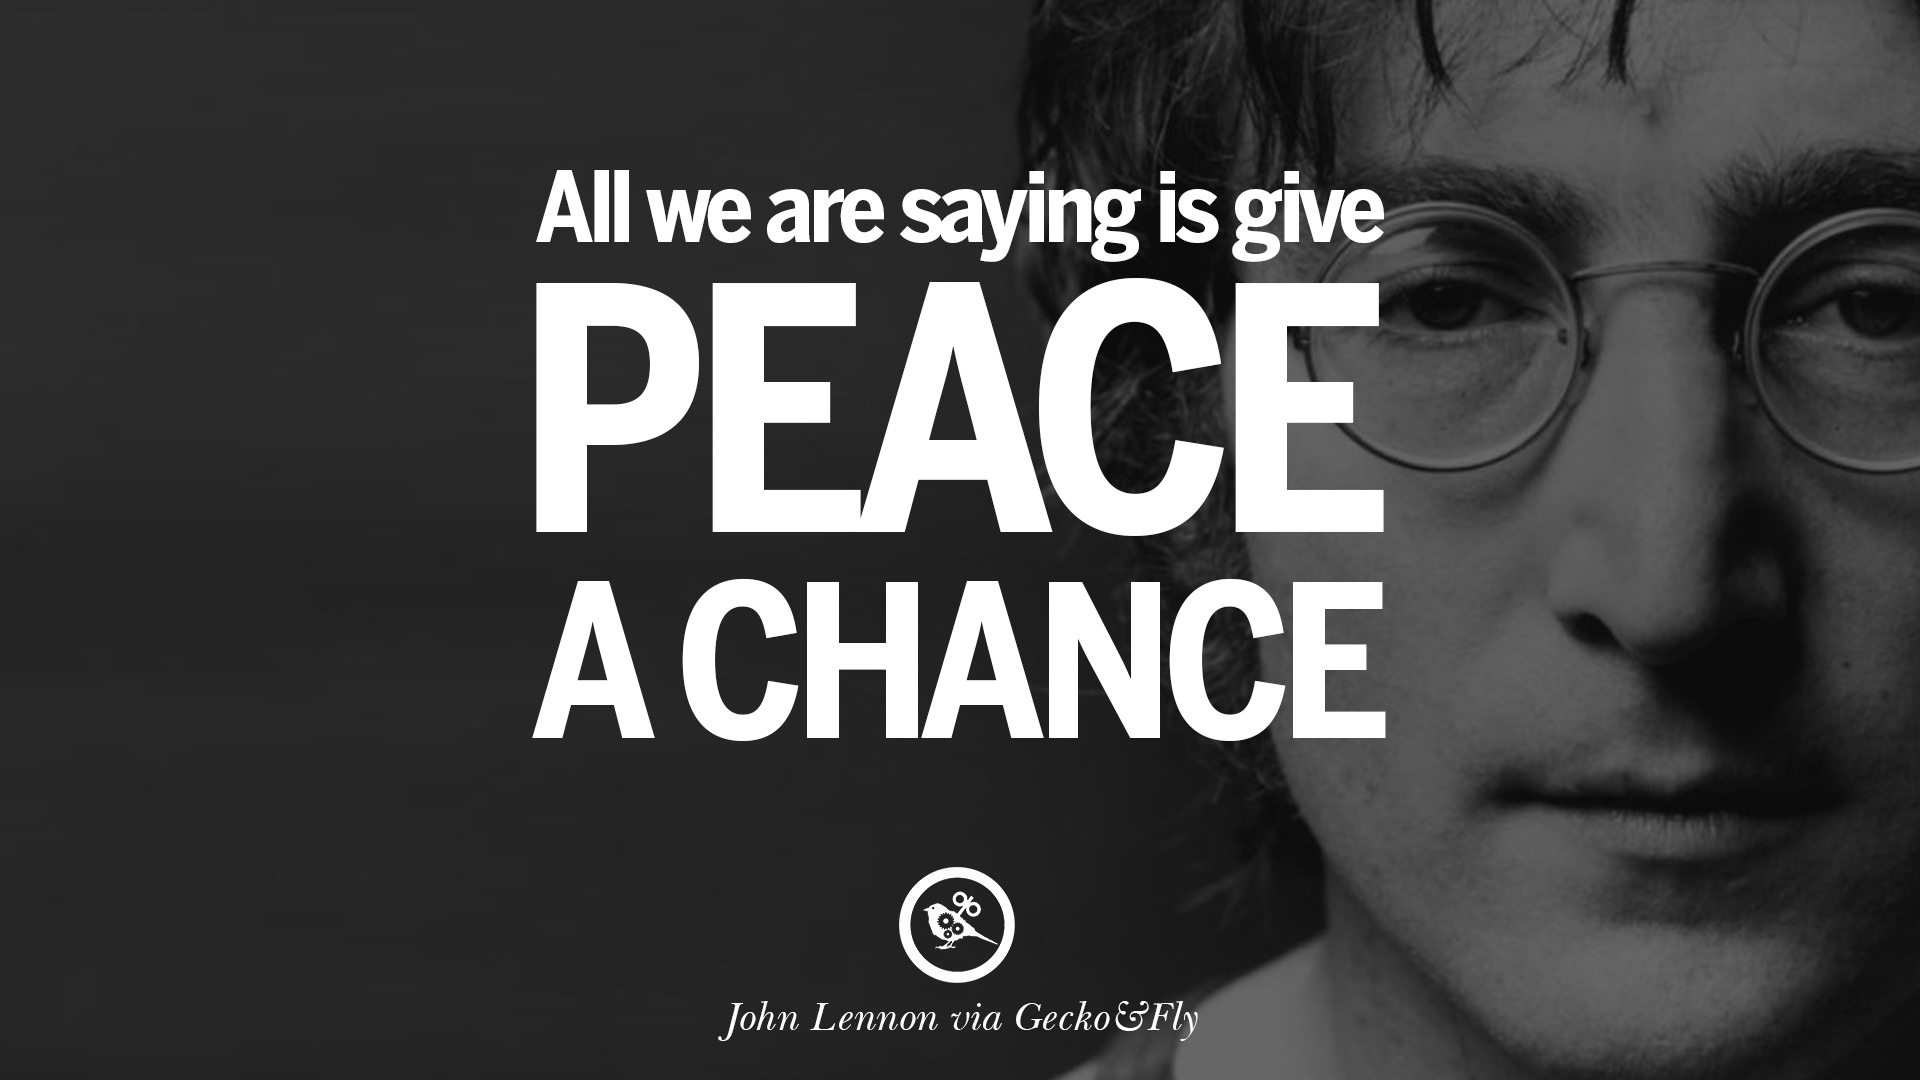 Flower Wallpaper With Friendship Quotes 15 John Lennon Quotes On Love Imagination Peace And Death